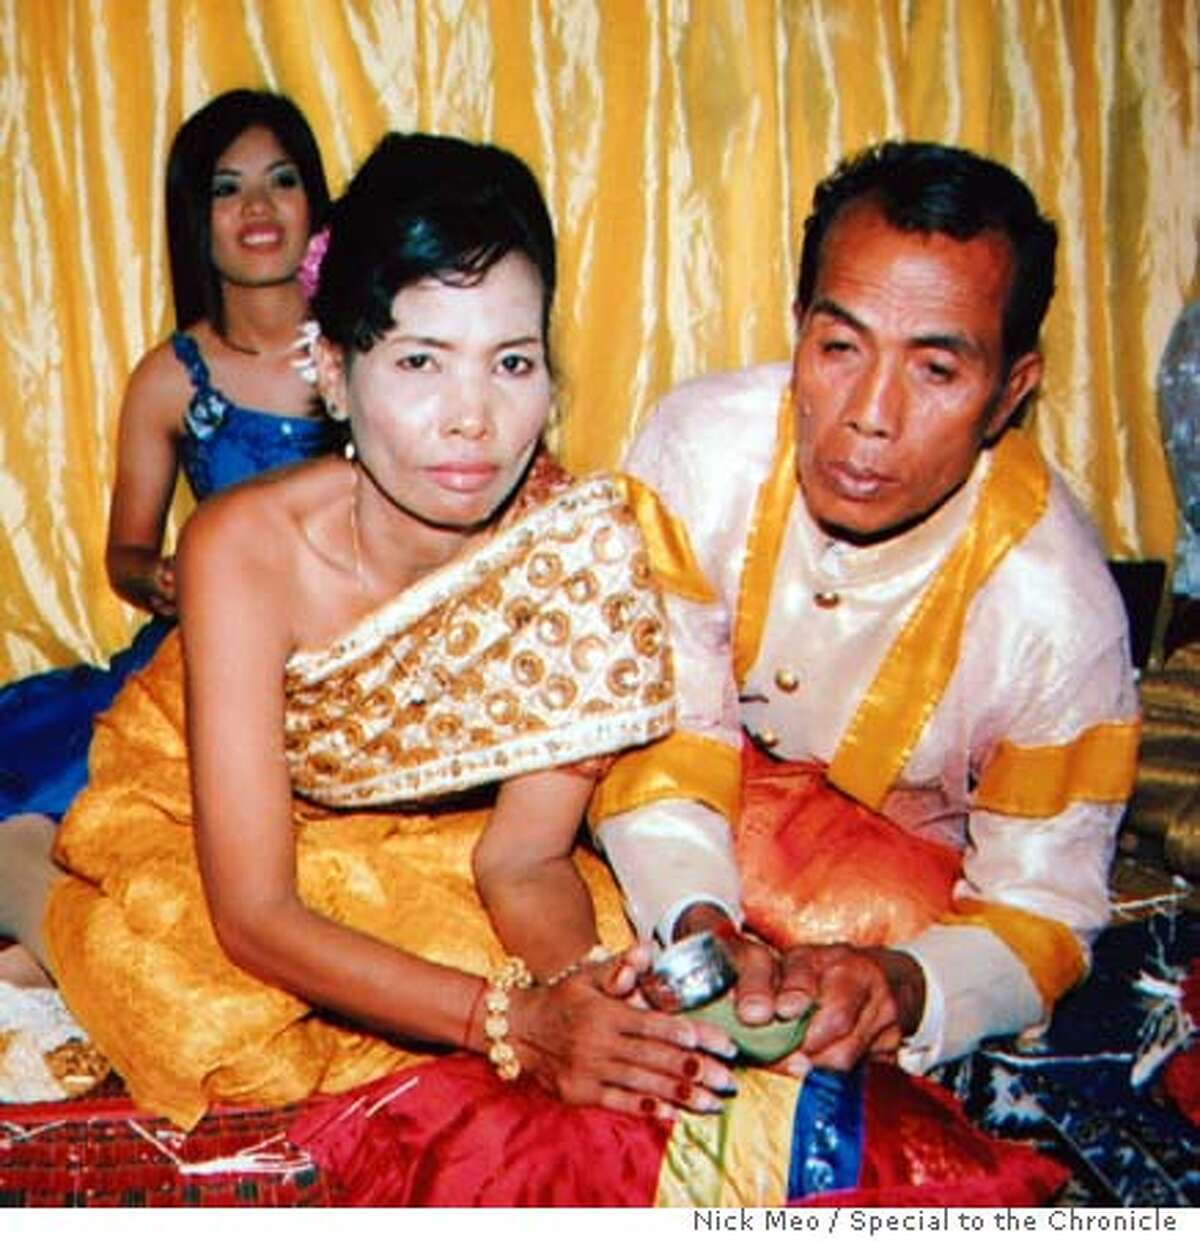 Cambodian couples forcibly married by the Khmer Rouge have married again three decades on, this time by a traditional Khmer ceremony. Picture shows Mrs. Prum Son, 50, and her husband Uk Huy, 55, in a wedding day photo taken at their second wedding in December in their village of Kbal Sen. They were strangers when they were married at a spartan ceremony in 1977 during the regime's rule. If they had refused they would have been executed. But their marriage has lasted nearly thirty years and they have four children. Nick Meo/Special to The Chronicle NO MAGS, NO SALES, NO TV